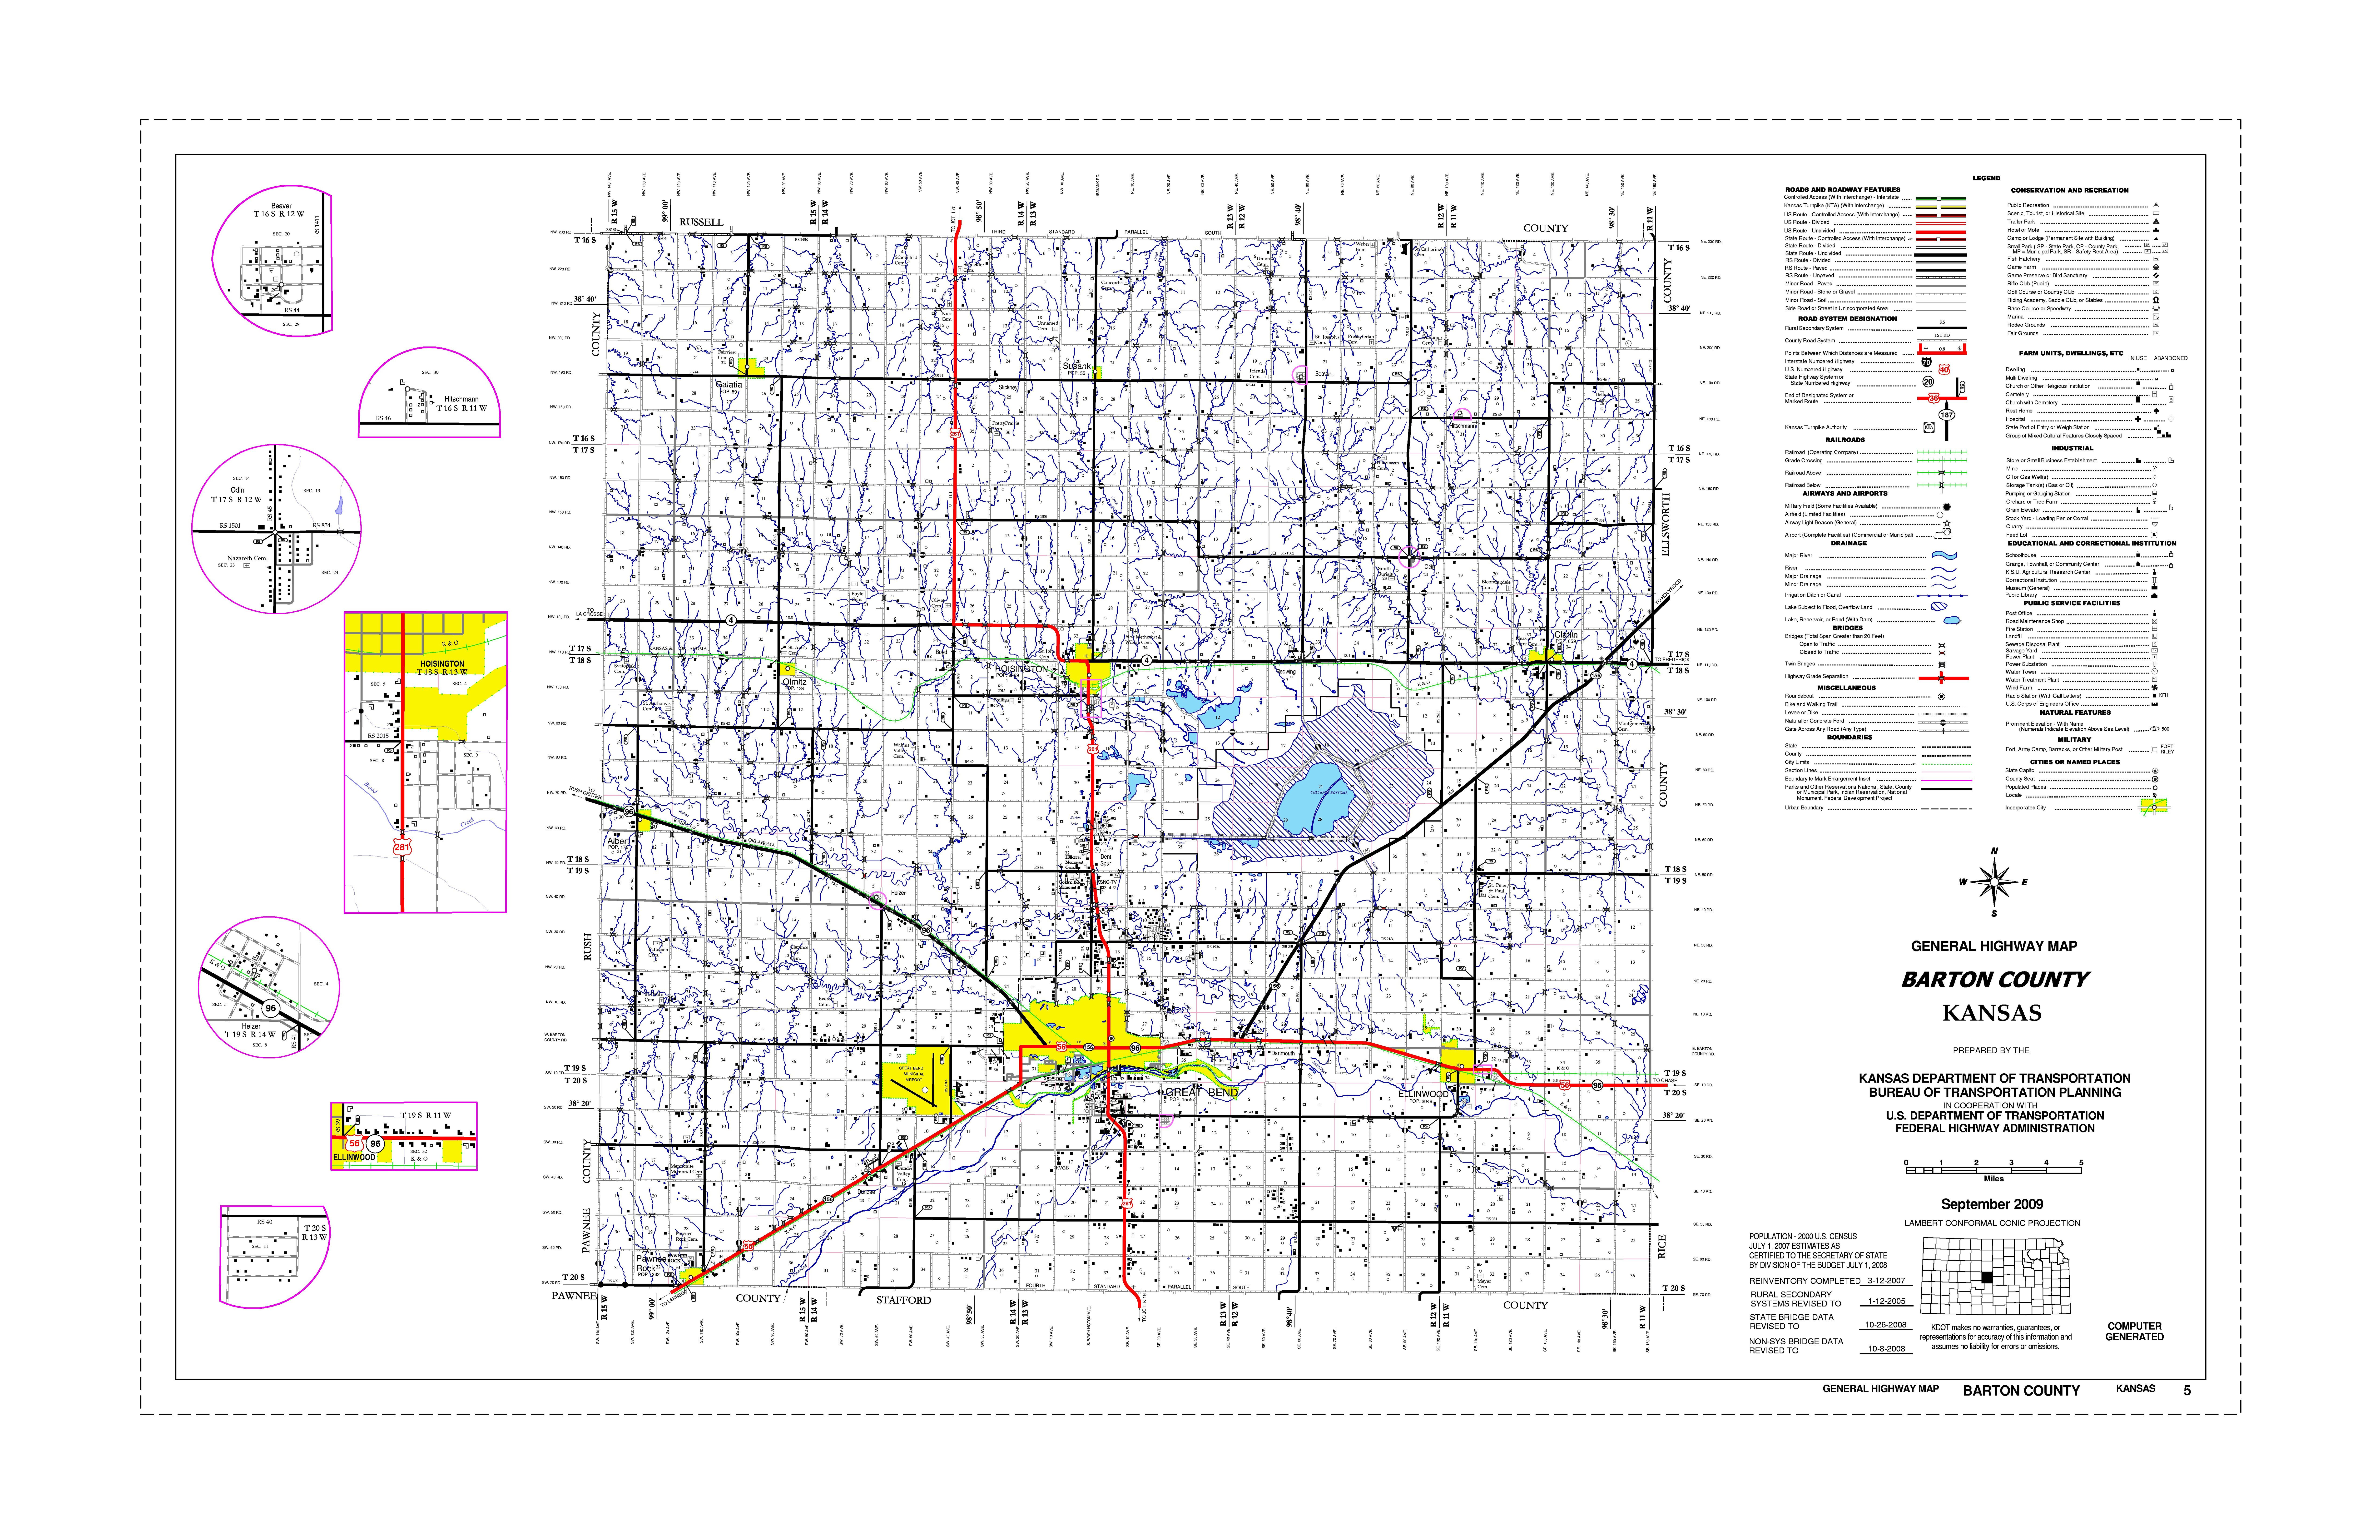 BARTON County on highway 666 new mexico maps, kansas hwy maps, motorcycle road trip maps, kansas roadway maps, kansas street maps, kansas highway atlas, kansas county map printable, kansas county atlases, kansas road map with counties, kansas state road maps,